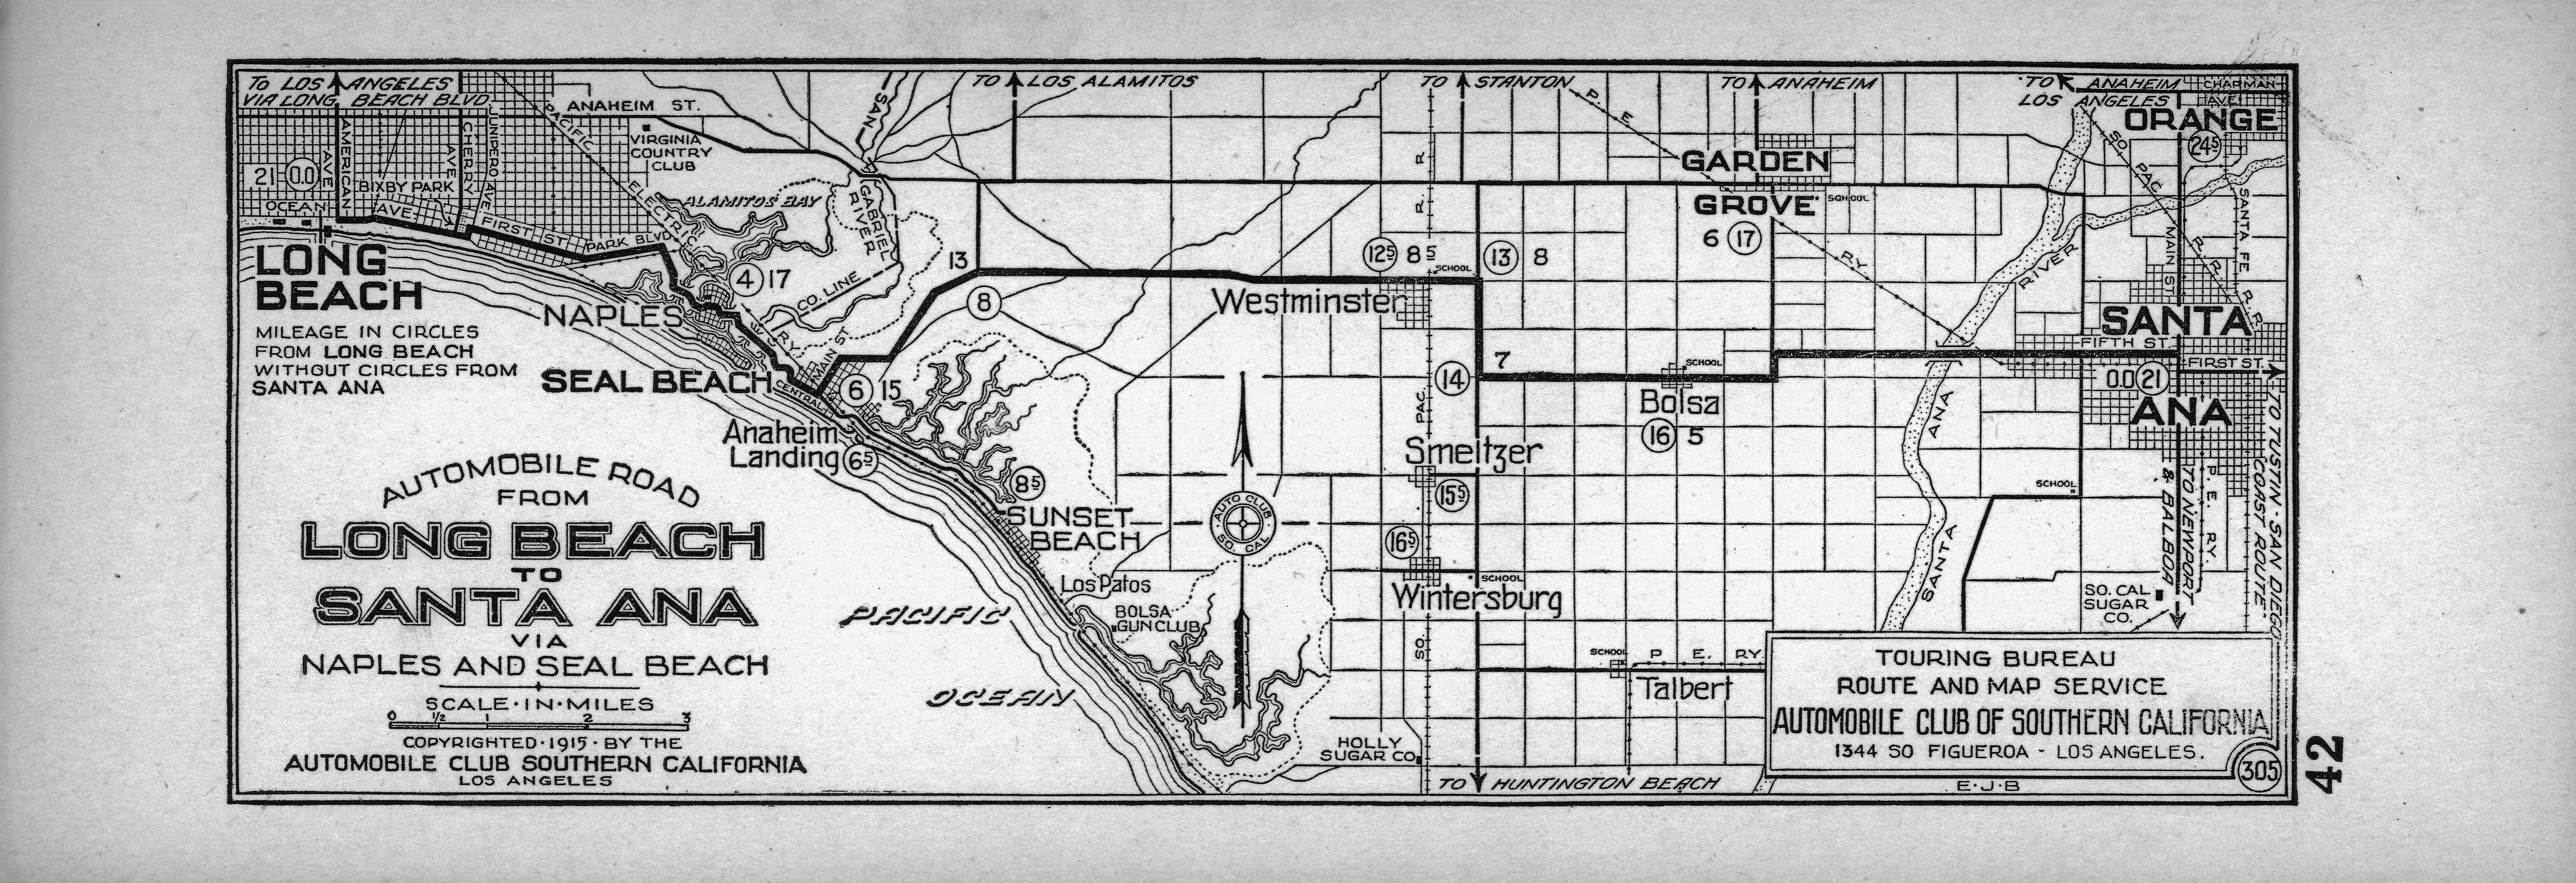 Superbe File:Automobile Road From Long Beach To Santa Ana Via Naples And Seal Beach,